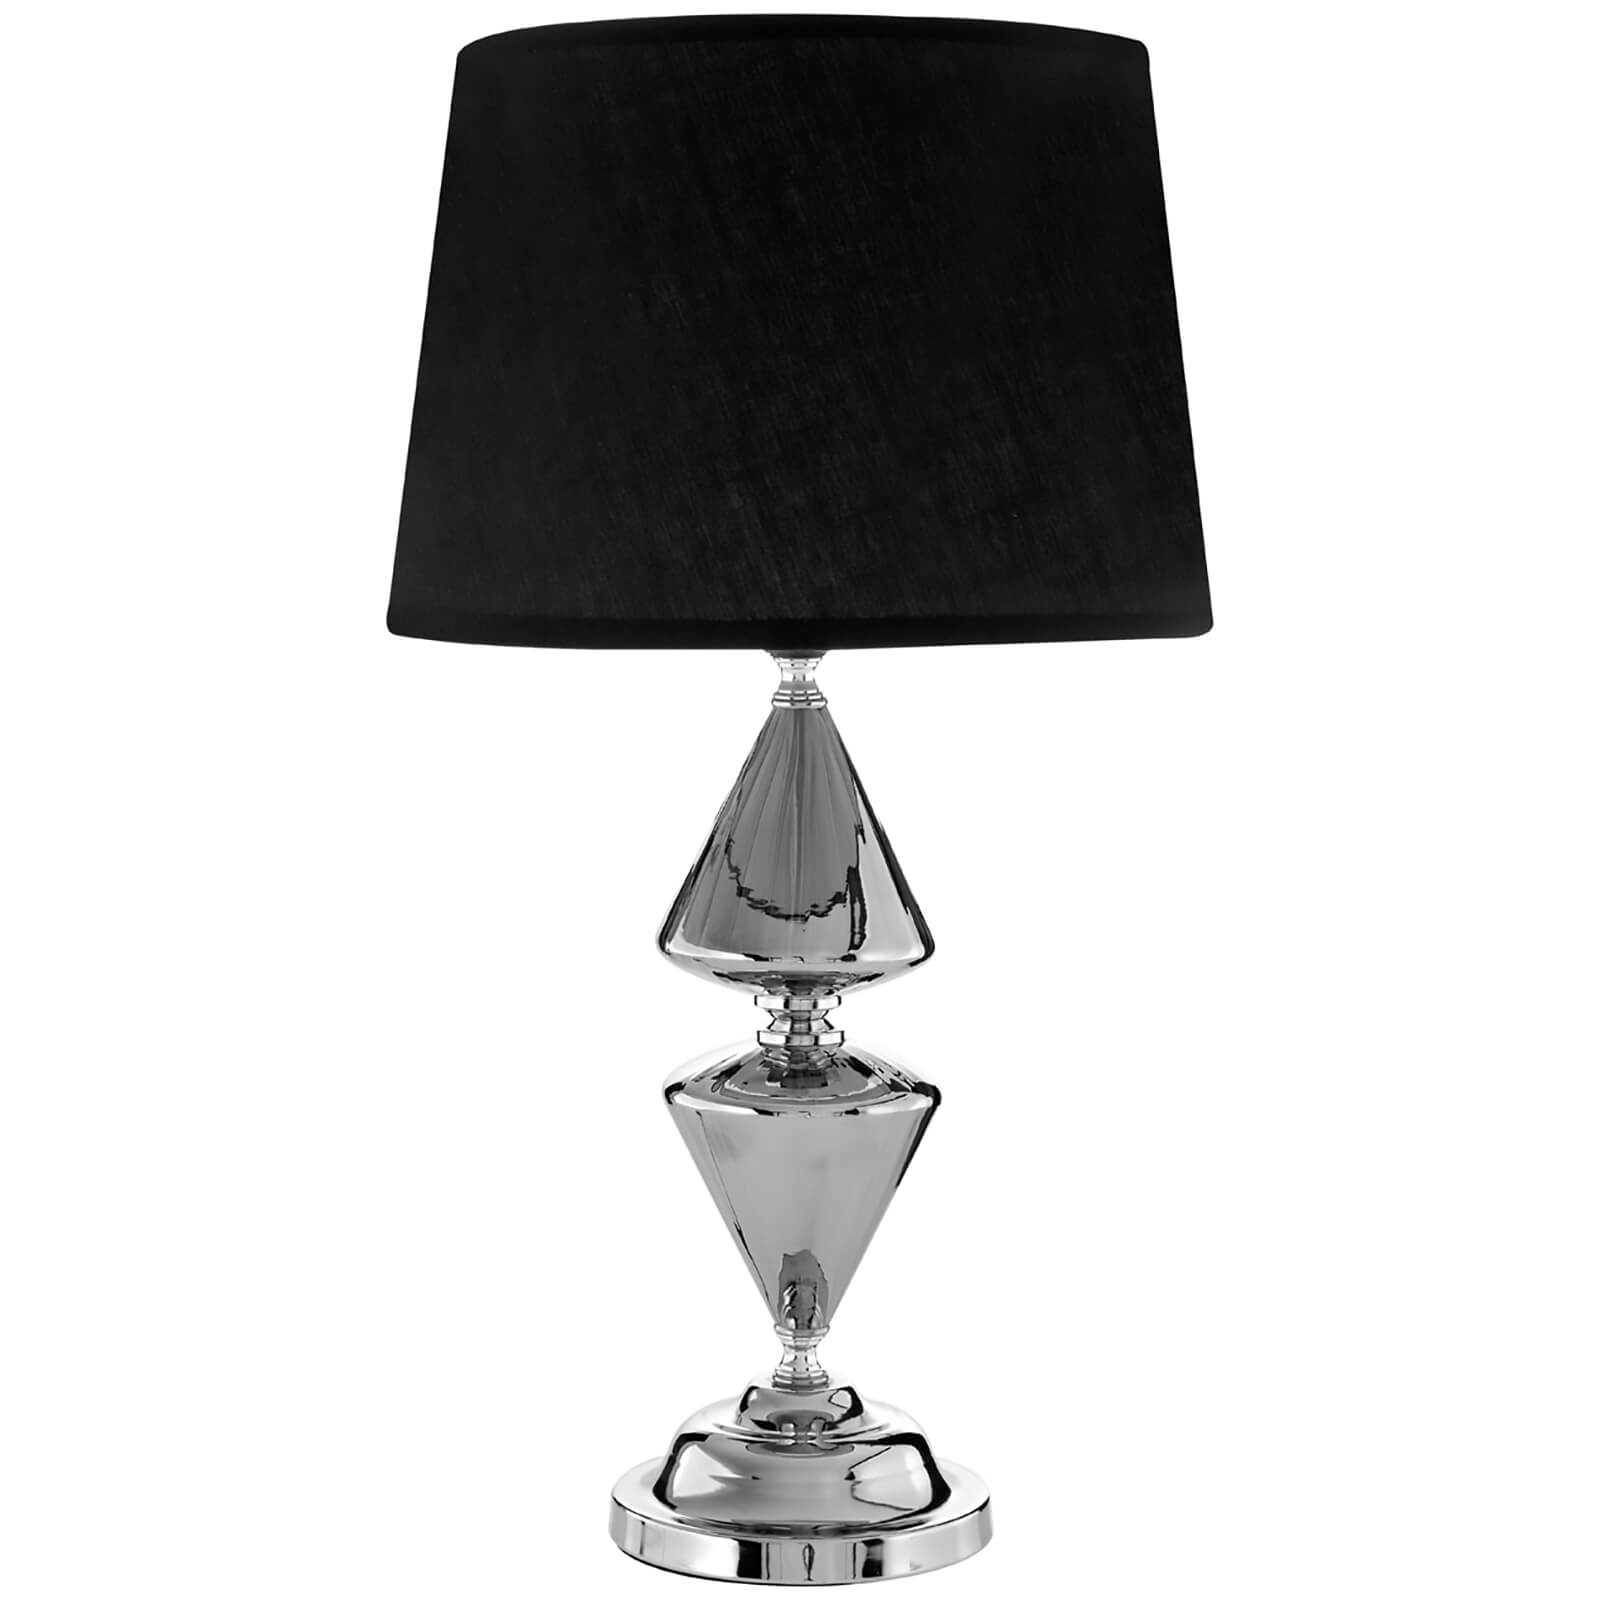 Fifty Five South Honor Glass/Metal Table Lamp - Silver/Black